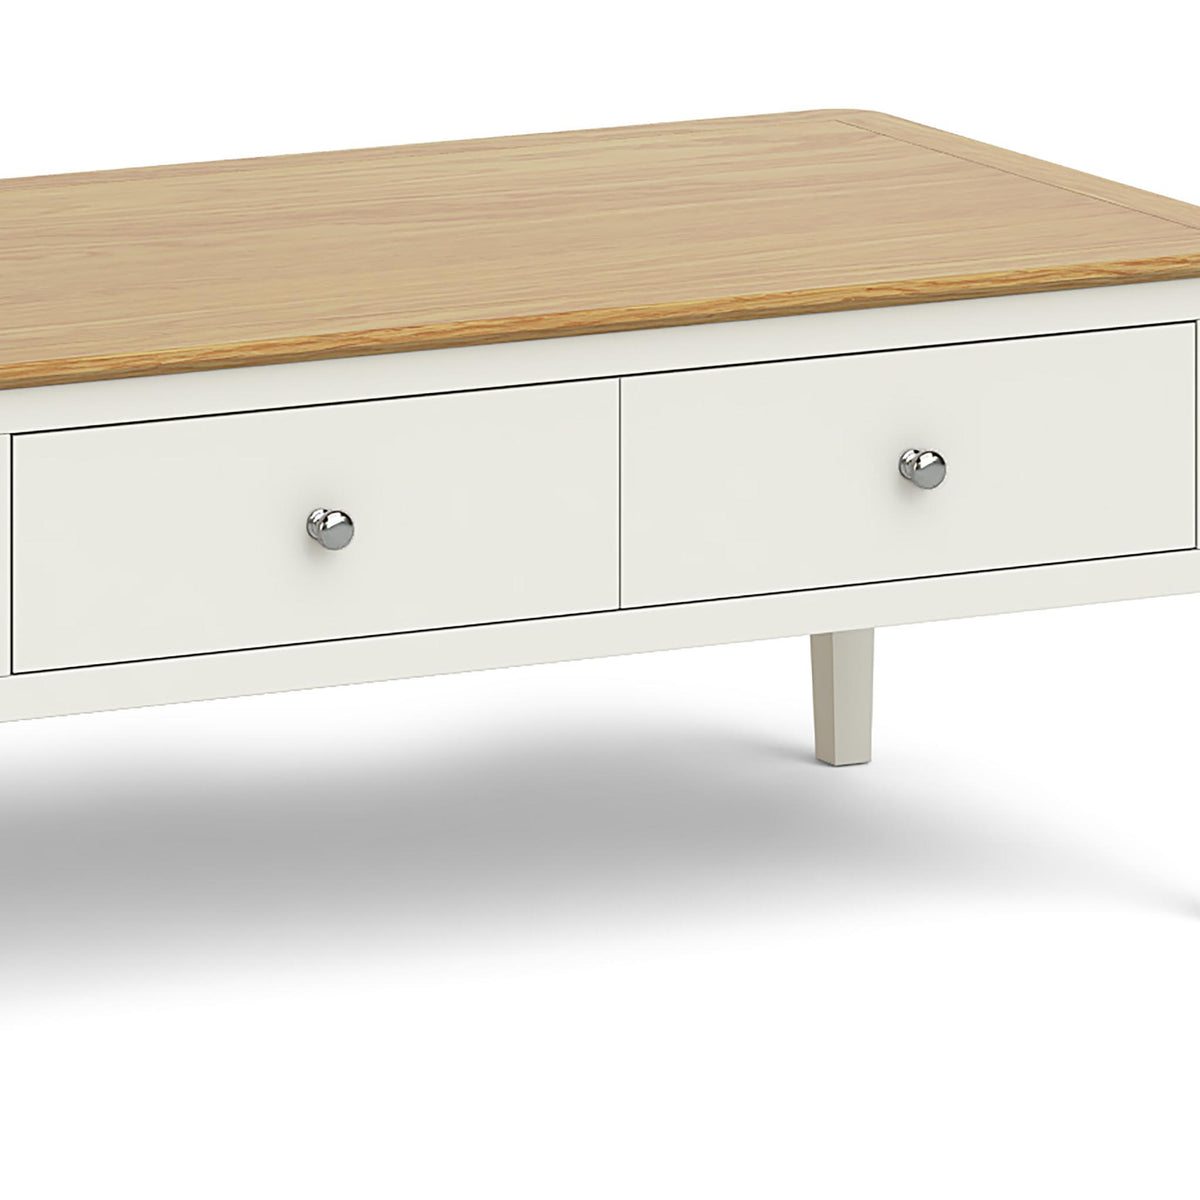 Windsor Cream Coffee Table - Close Up of Drawer